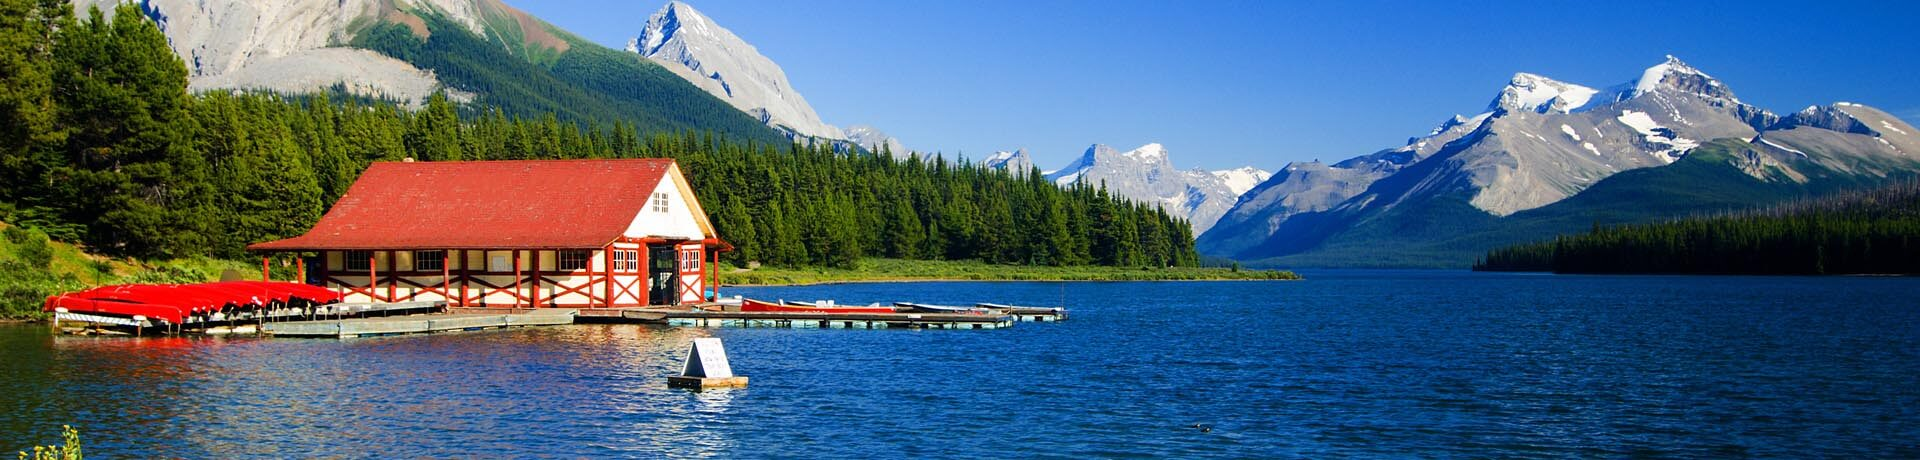 Maligne Lake and Maligne Mountain, Jasper, Canadian Rockies